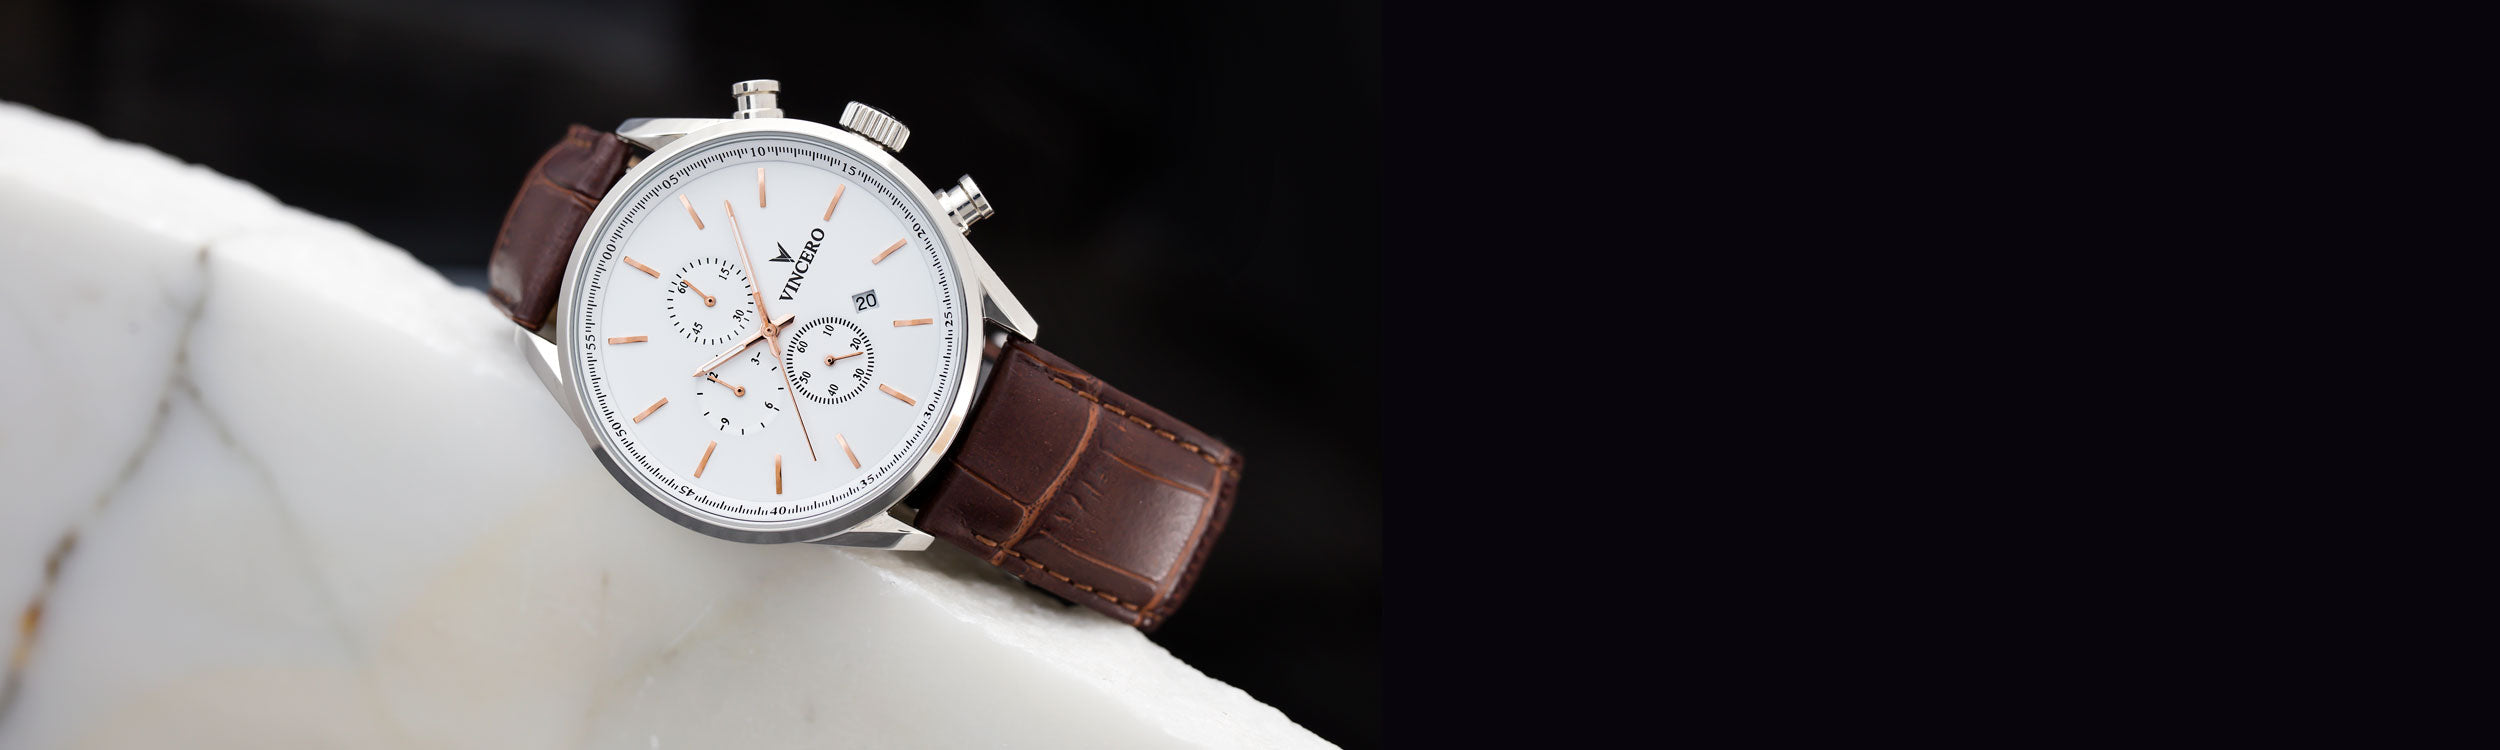 Brown and white watch leaning on white marble